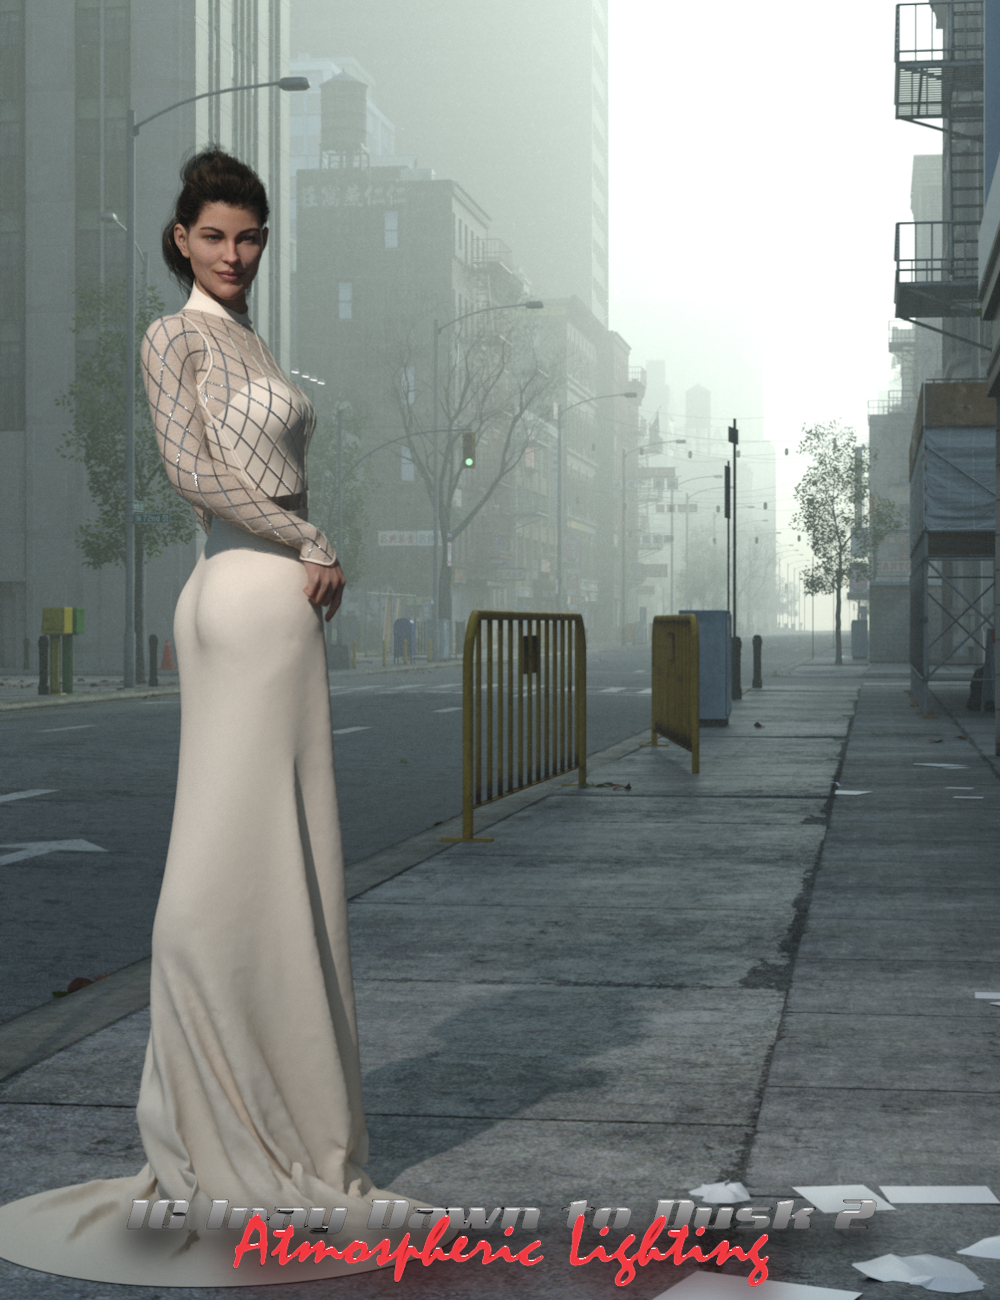 IG Iray Dawn to Dusk 2 Atmospheric Lighting by: IDG DesignsInaneGlory, 3D Models by Daz 3D